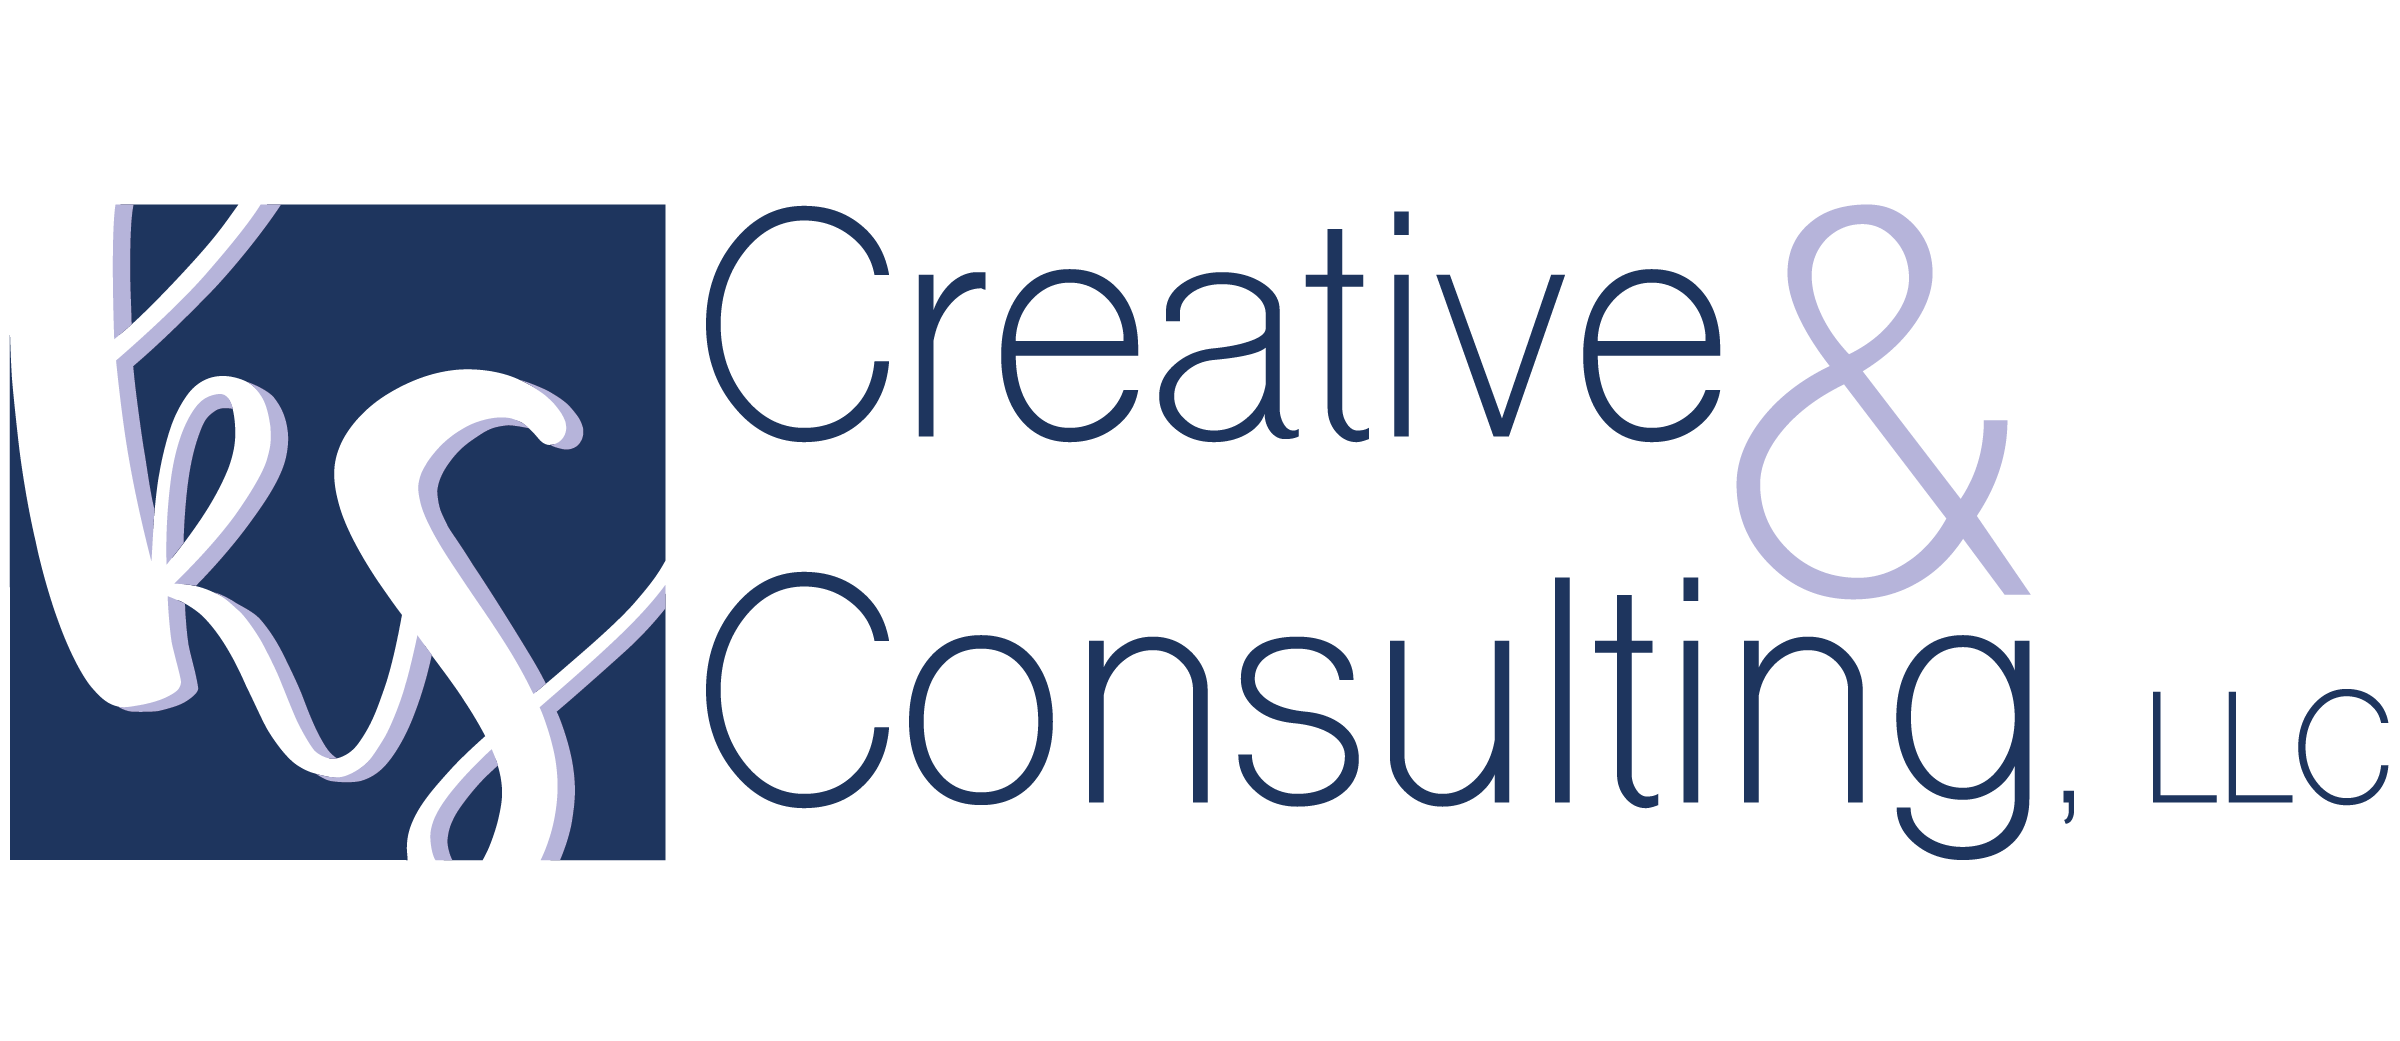 KS Creative & Consulting